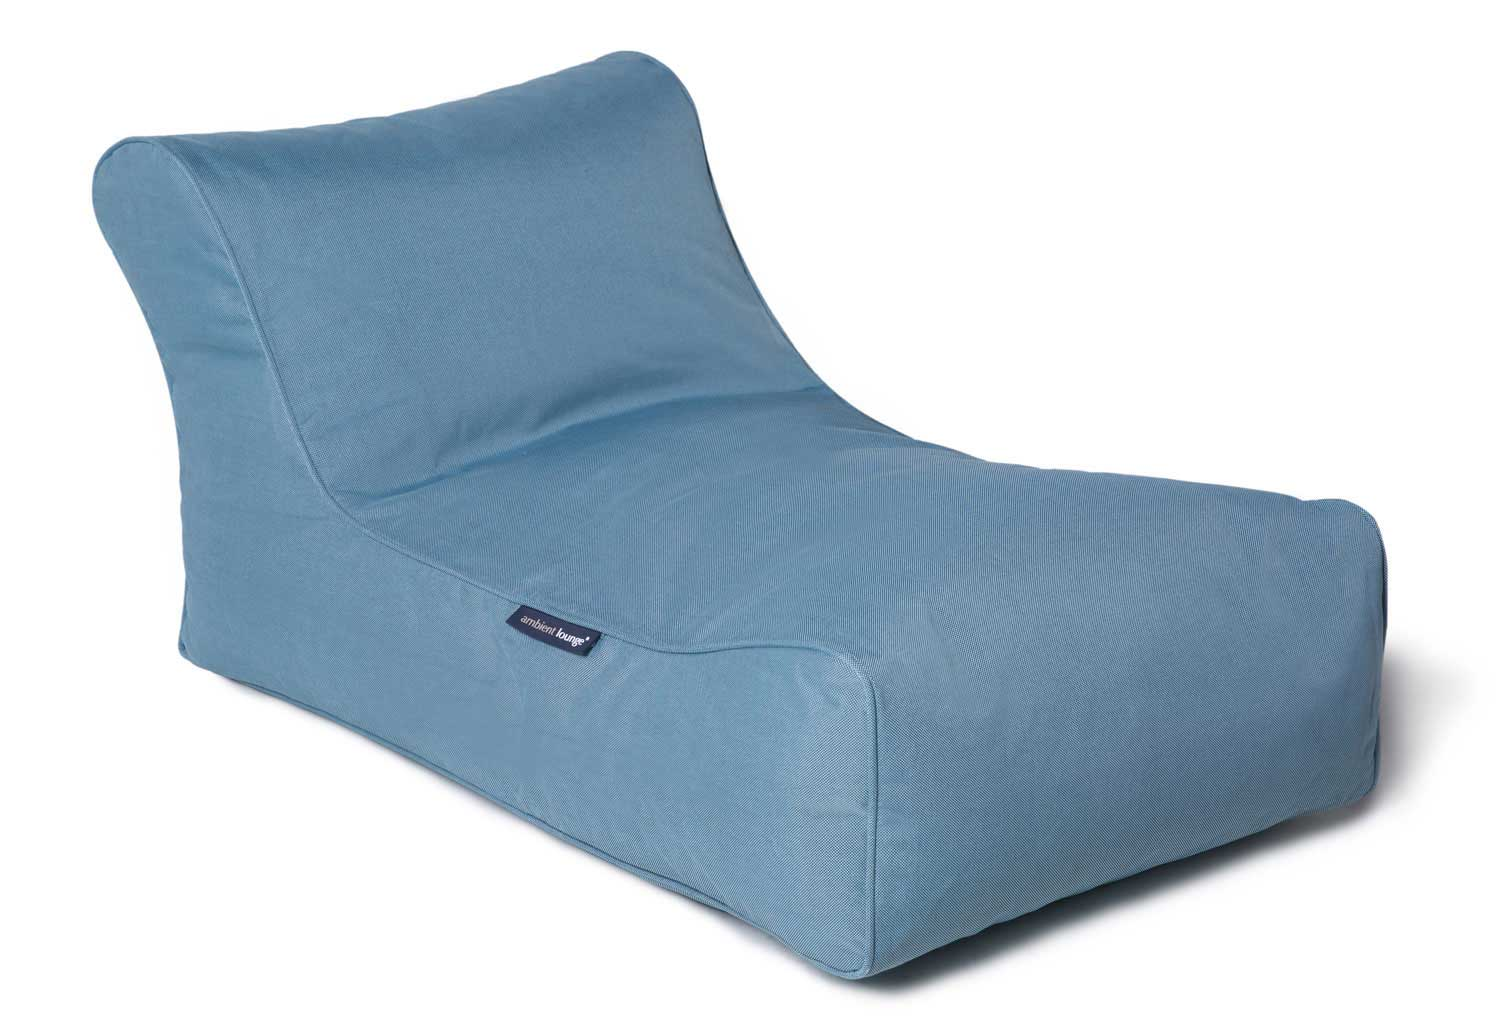 Studio Lounger Blue Sky Eclipse